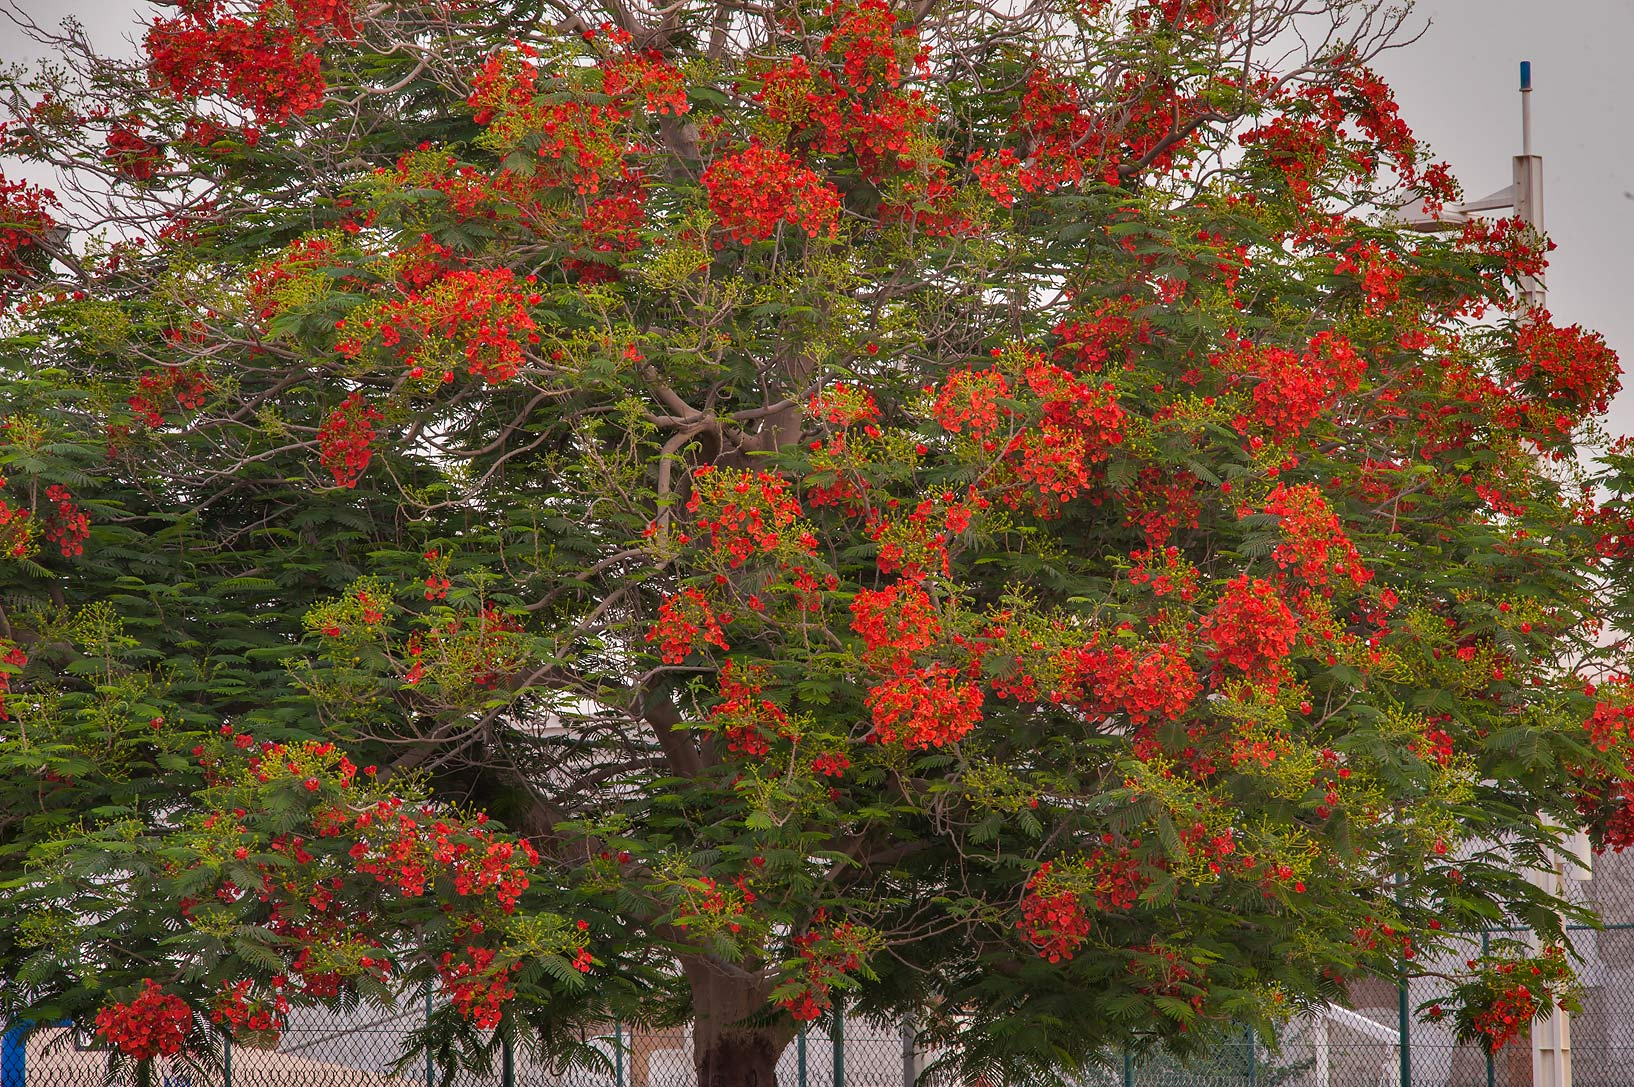 Royal Poinciana tree (Flamboyant, Delonix regia) in Aspire Park. Doha, Qatar